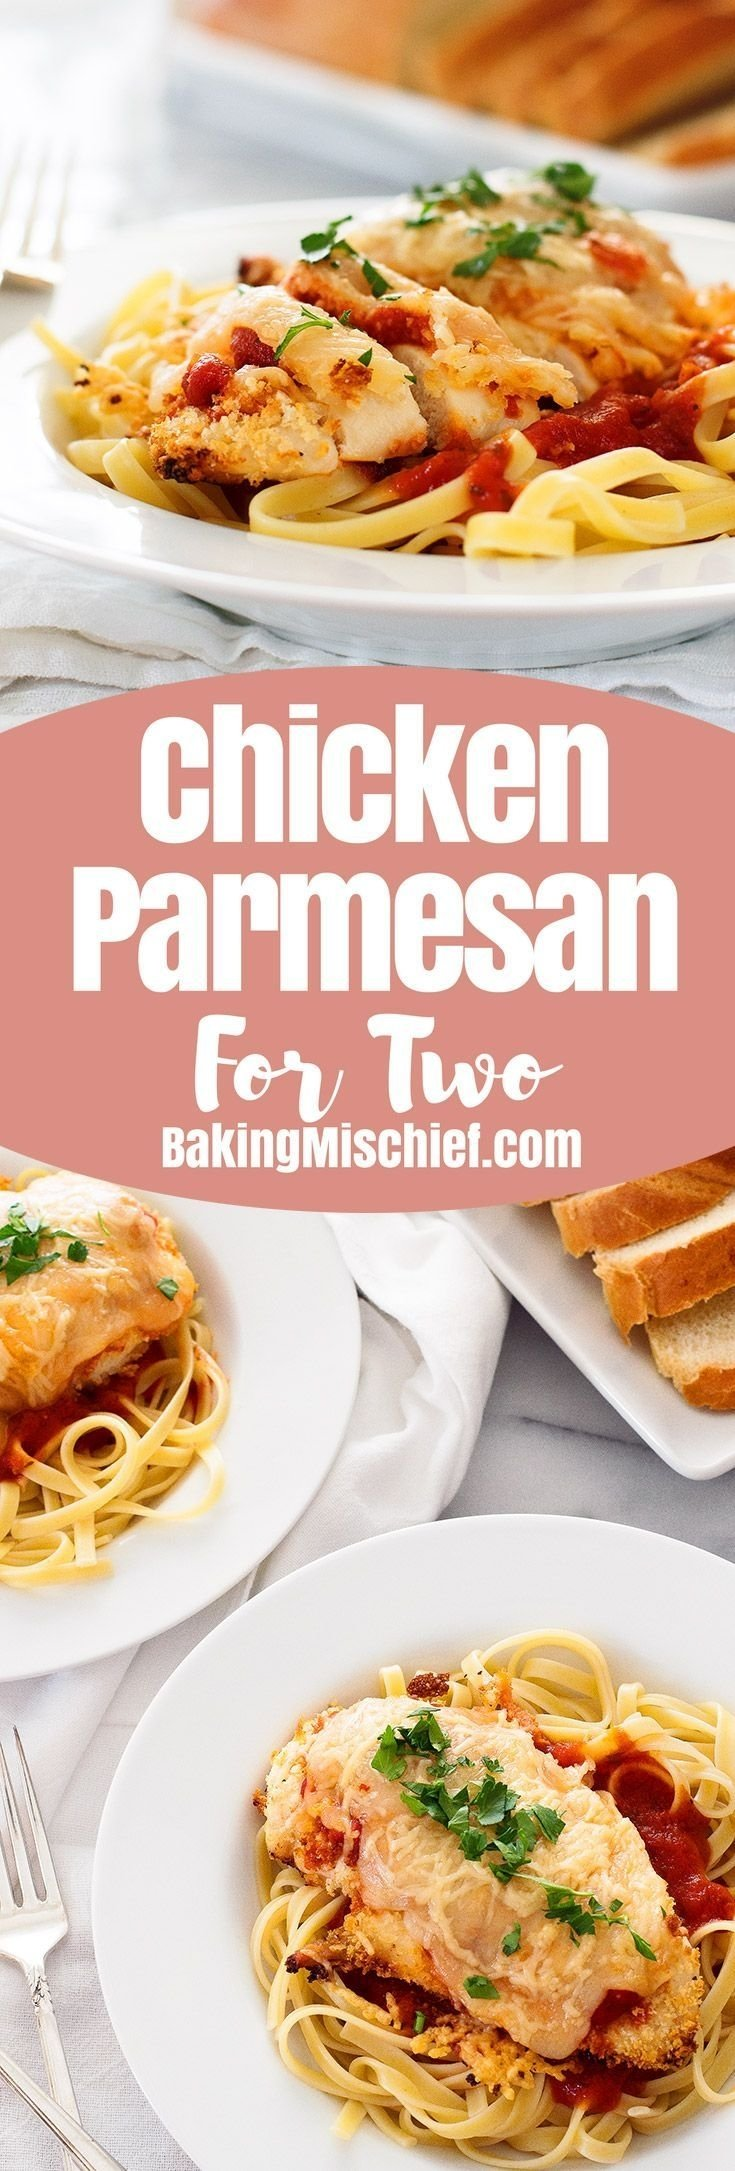 10 Cute Dinner Ideas For Two Cheap download cheap easy recipes for two food photos 7 2020